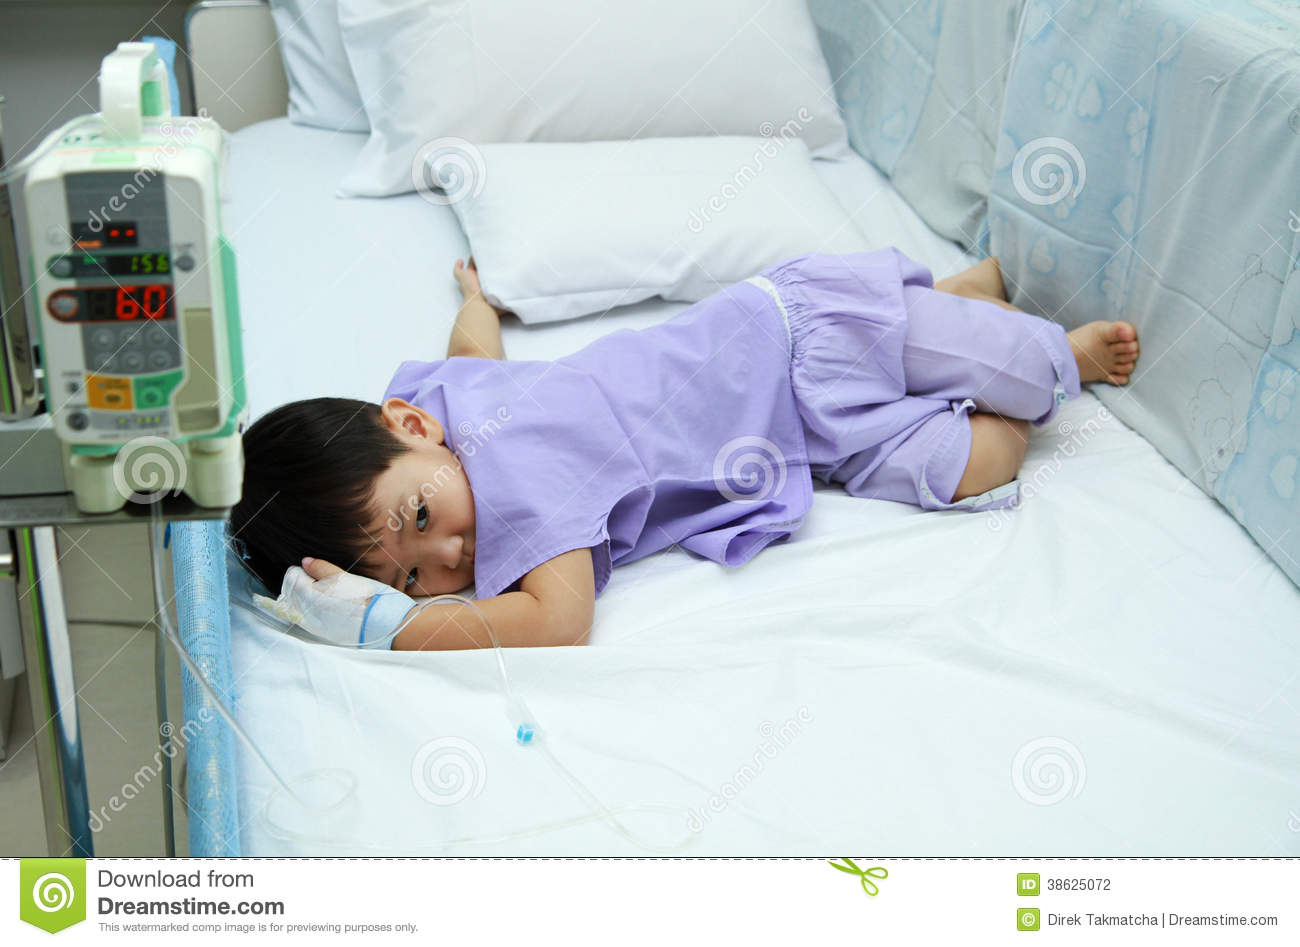 Patient In Hospital Bed : Children Patient In Hospital Bed Stock Photography - Image: 38625072